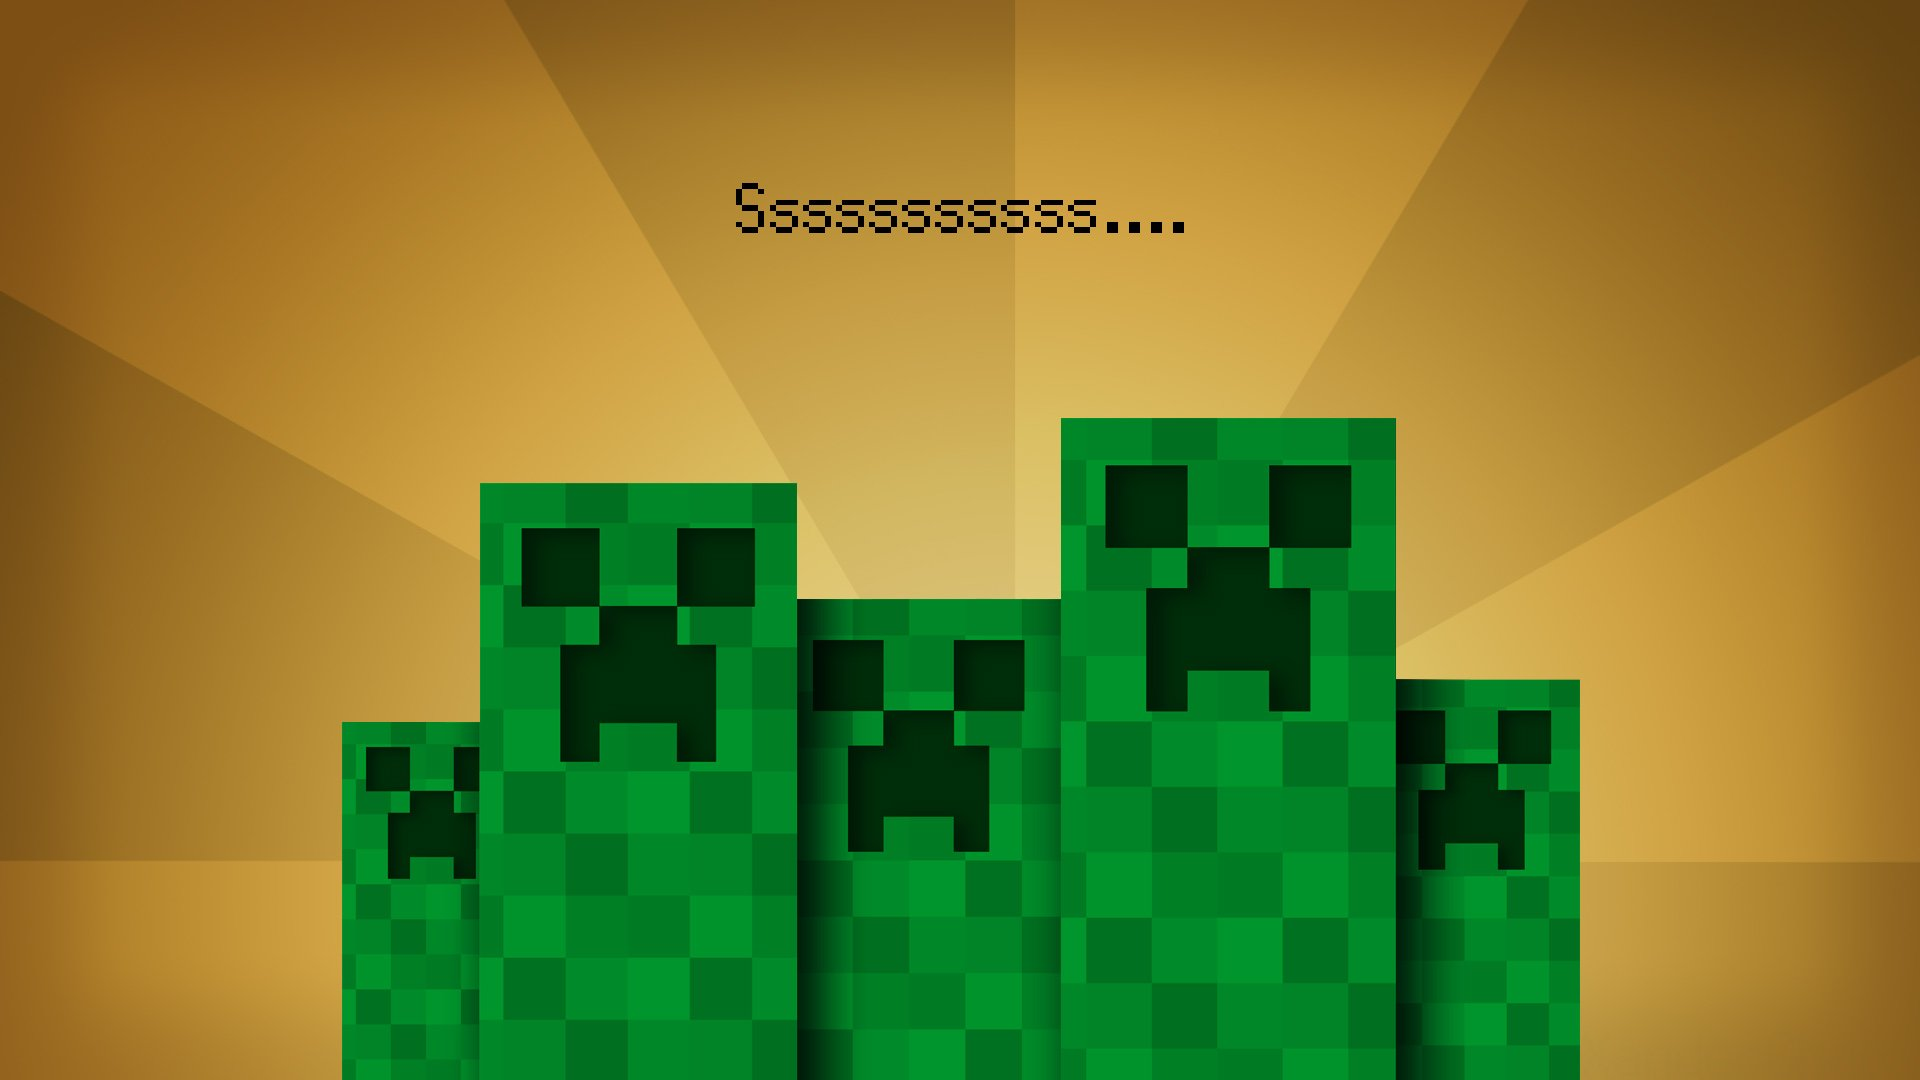 Minecraft-backgrounds-cool-awsome-wallpapers -youtube-background-channel-logo-wallpaper-creeper-skincreeper-gppnyno0.jpg